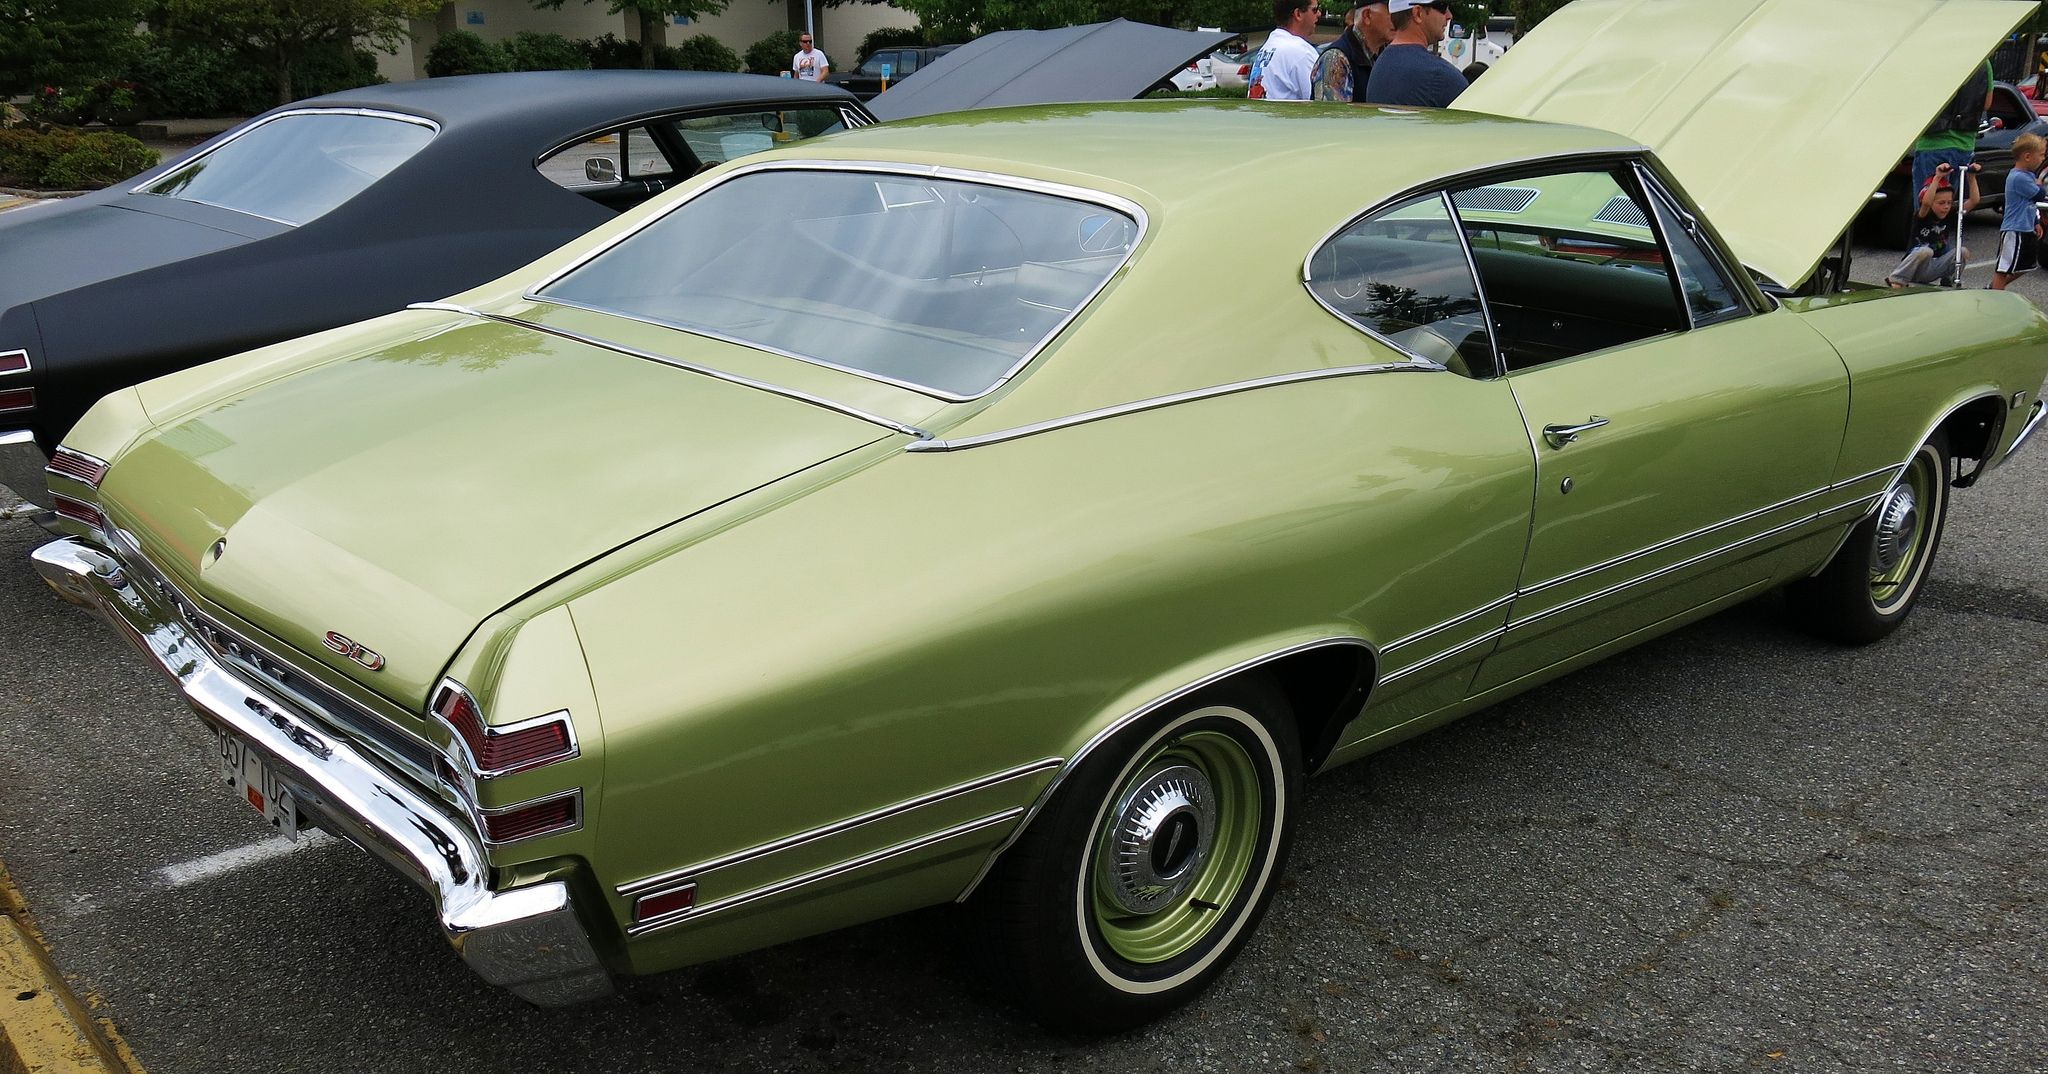 1968 Beaumont SD 396 Sport Deluxe Coupe Canada